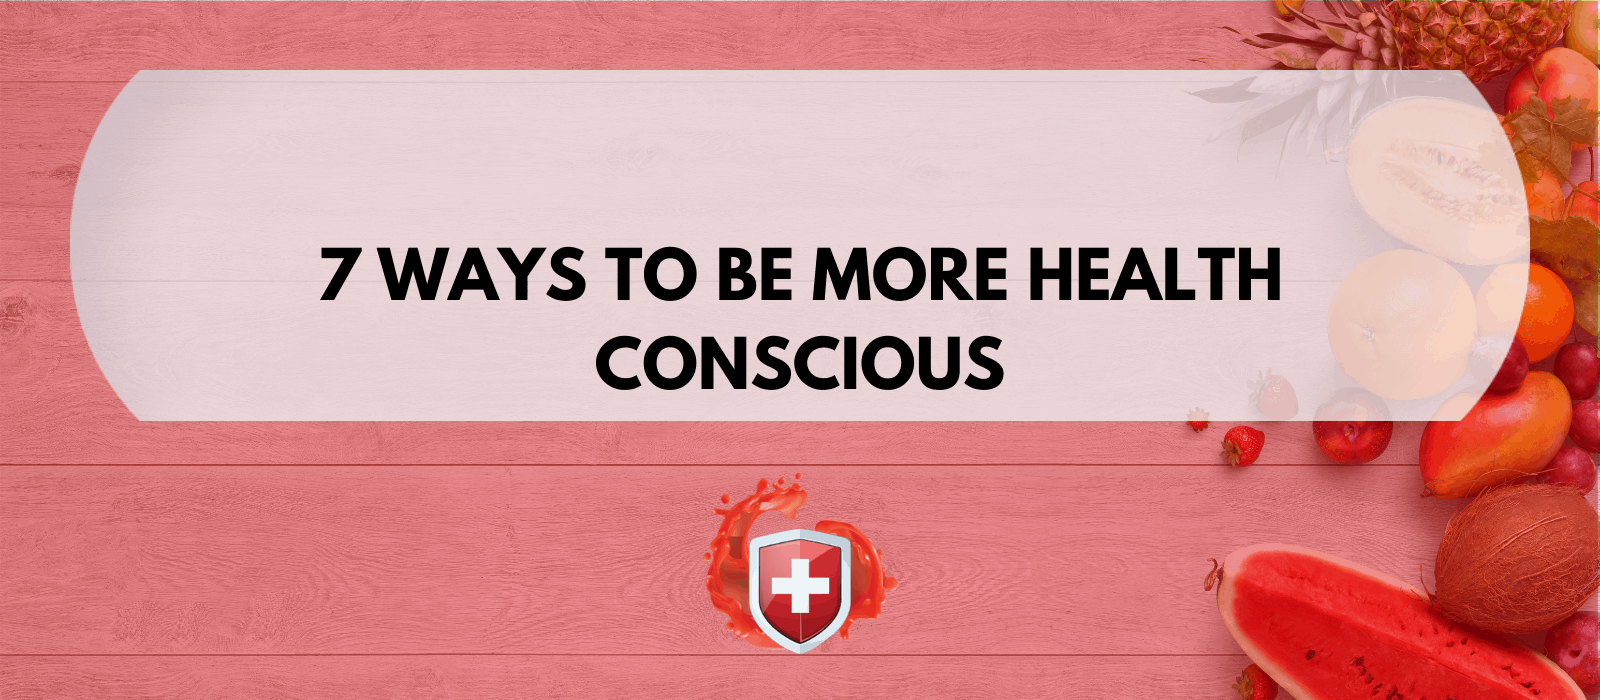 7 Ways to be More Health Conscious